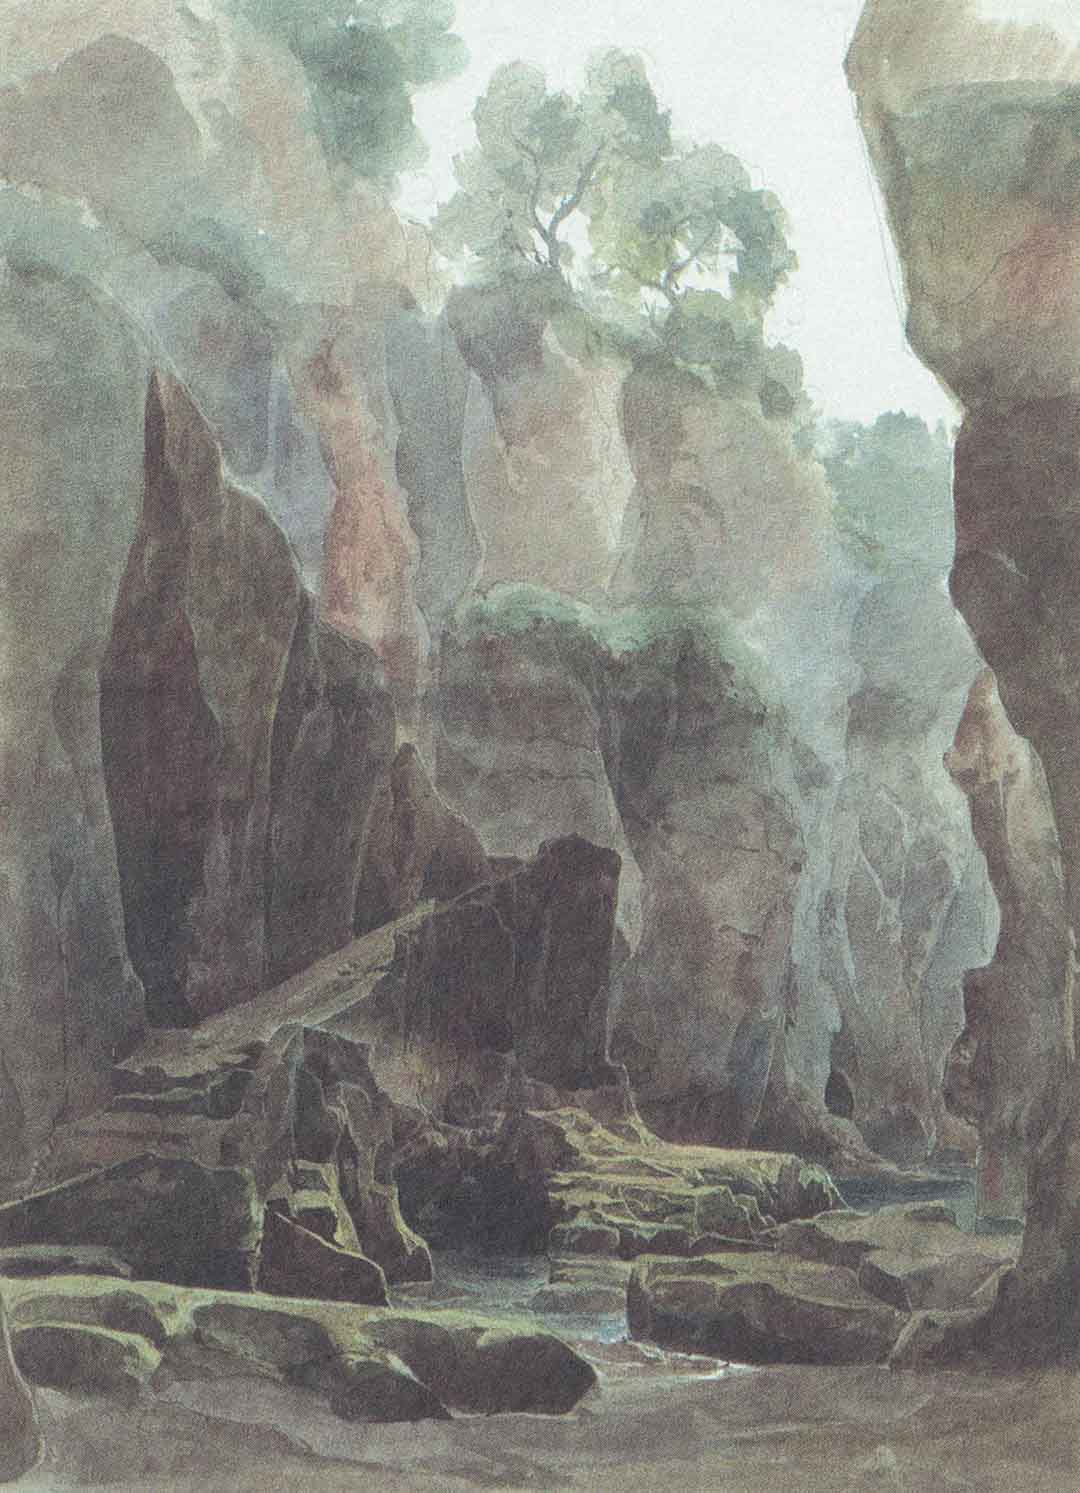 Ernest FRIES (Heidelberg 1801 – Karlsruhe 1833), Rocce nel vallone a Sorrento, 1826